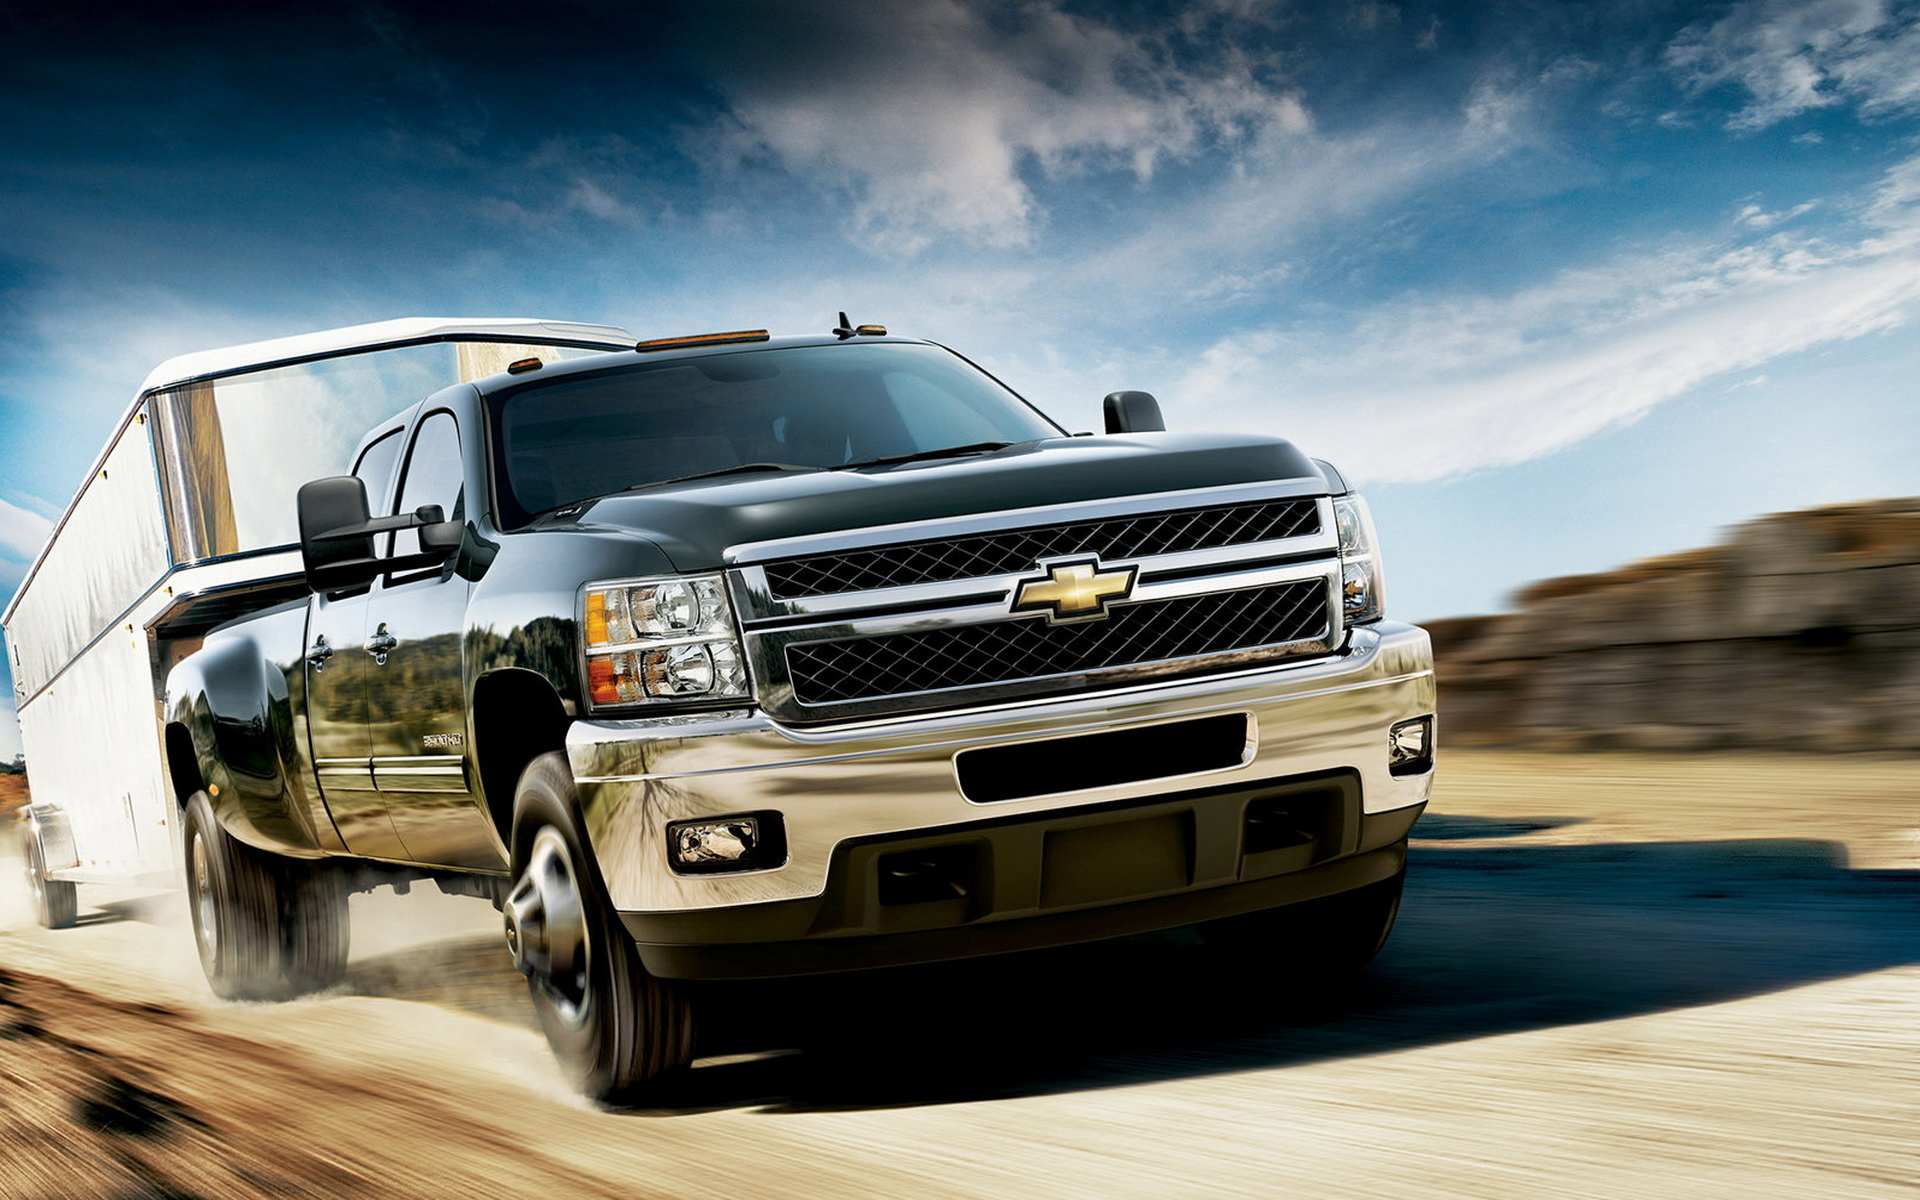 Chevrolet Silverado HD wallpapers and images   wallpapers pictures 1920x1200